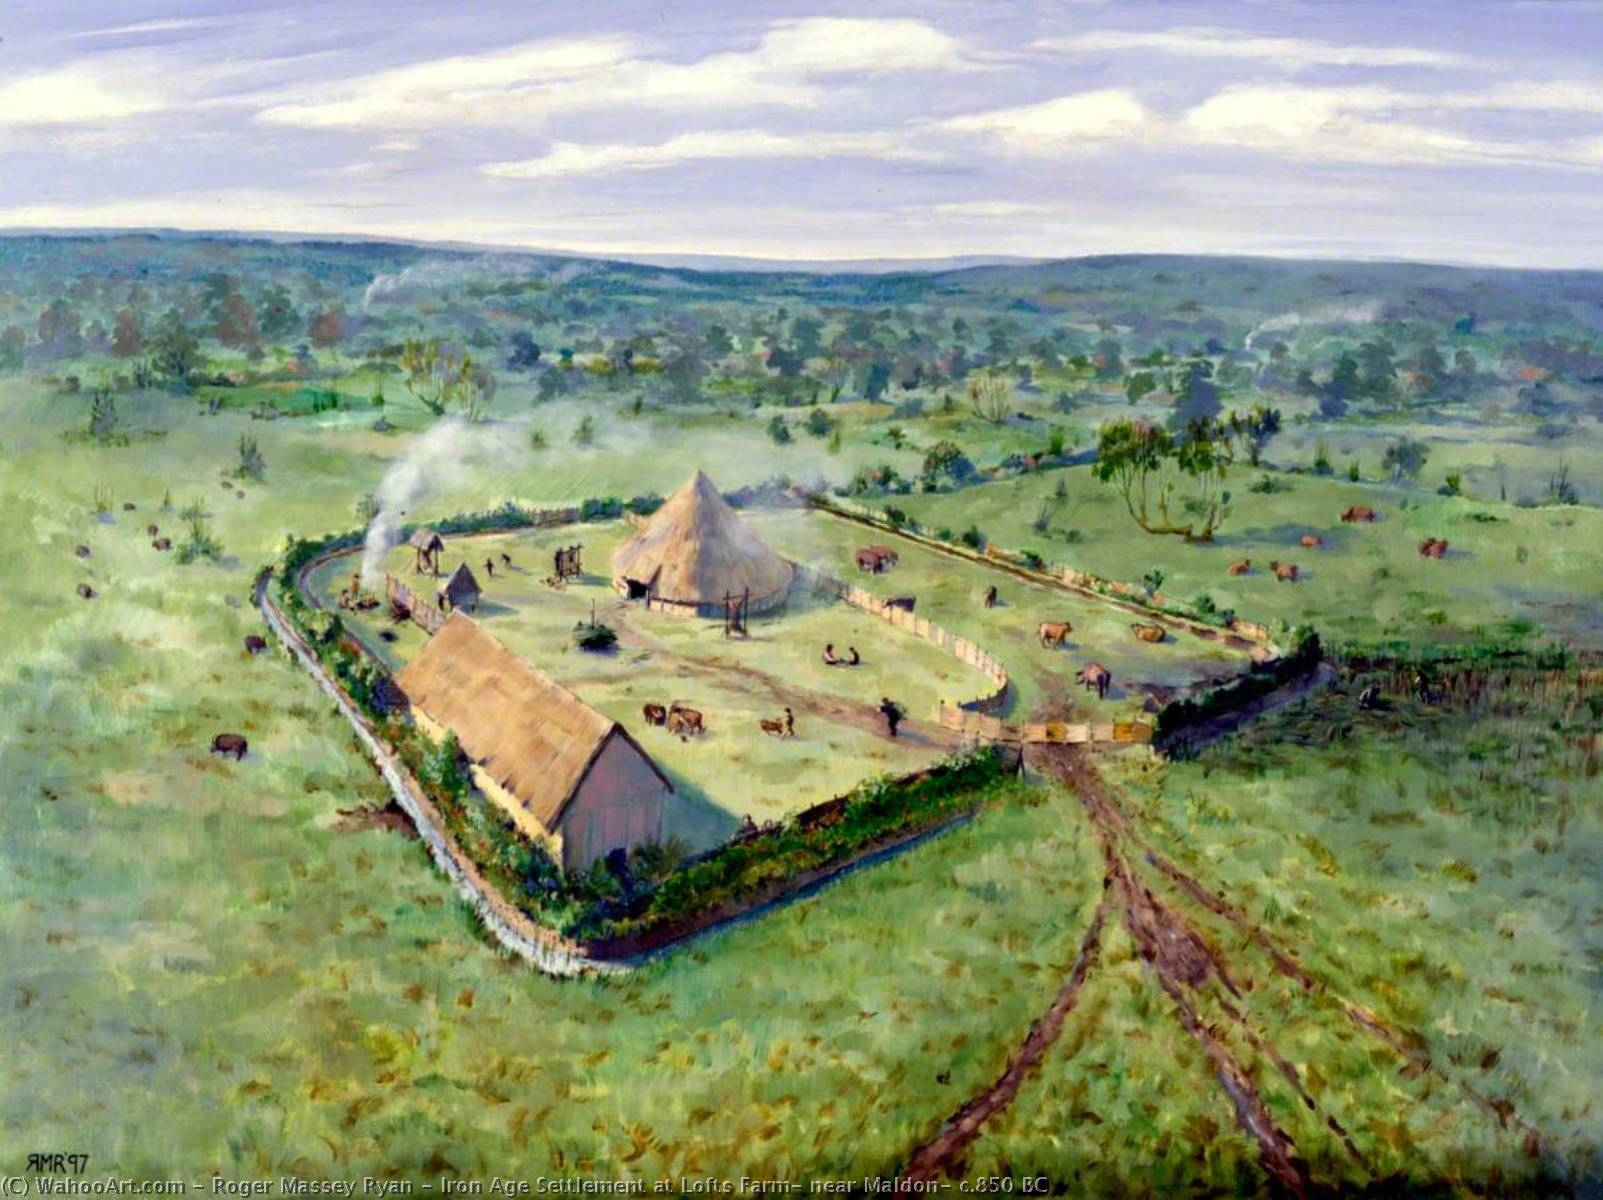 Iron Age Settlement at Lofts Farm, near Maldon, c.850 BC, 1997 by Roger Massey Ryan | Art Reproduction | WahooArt.com